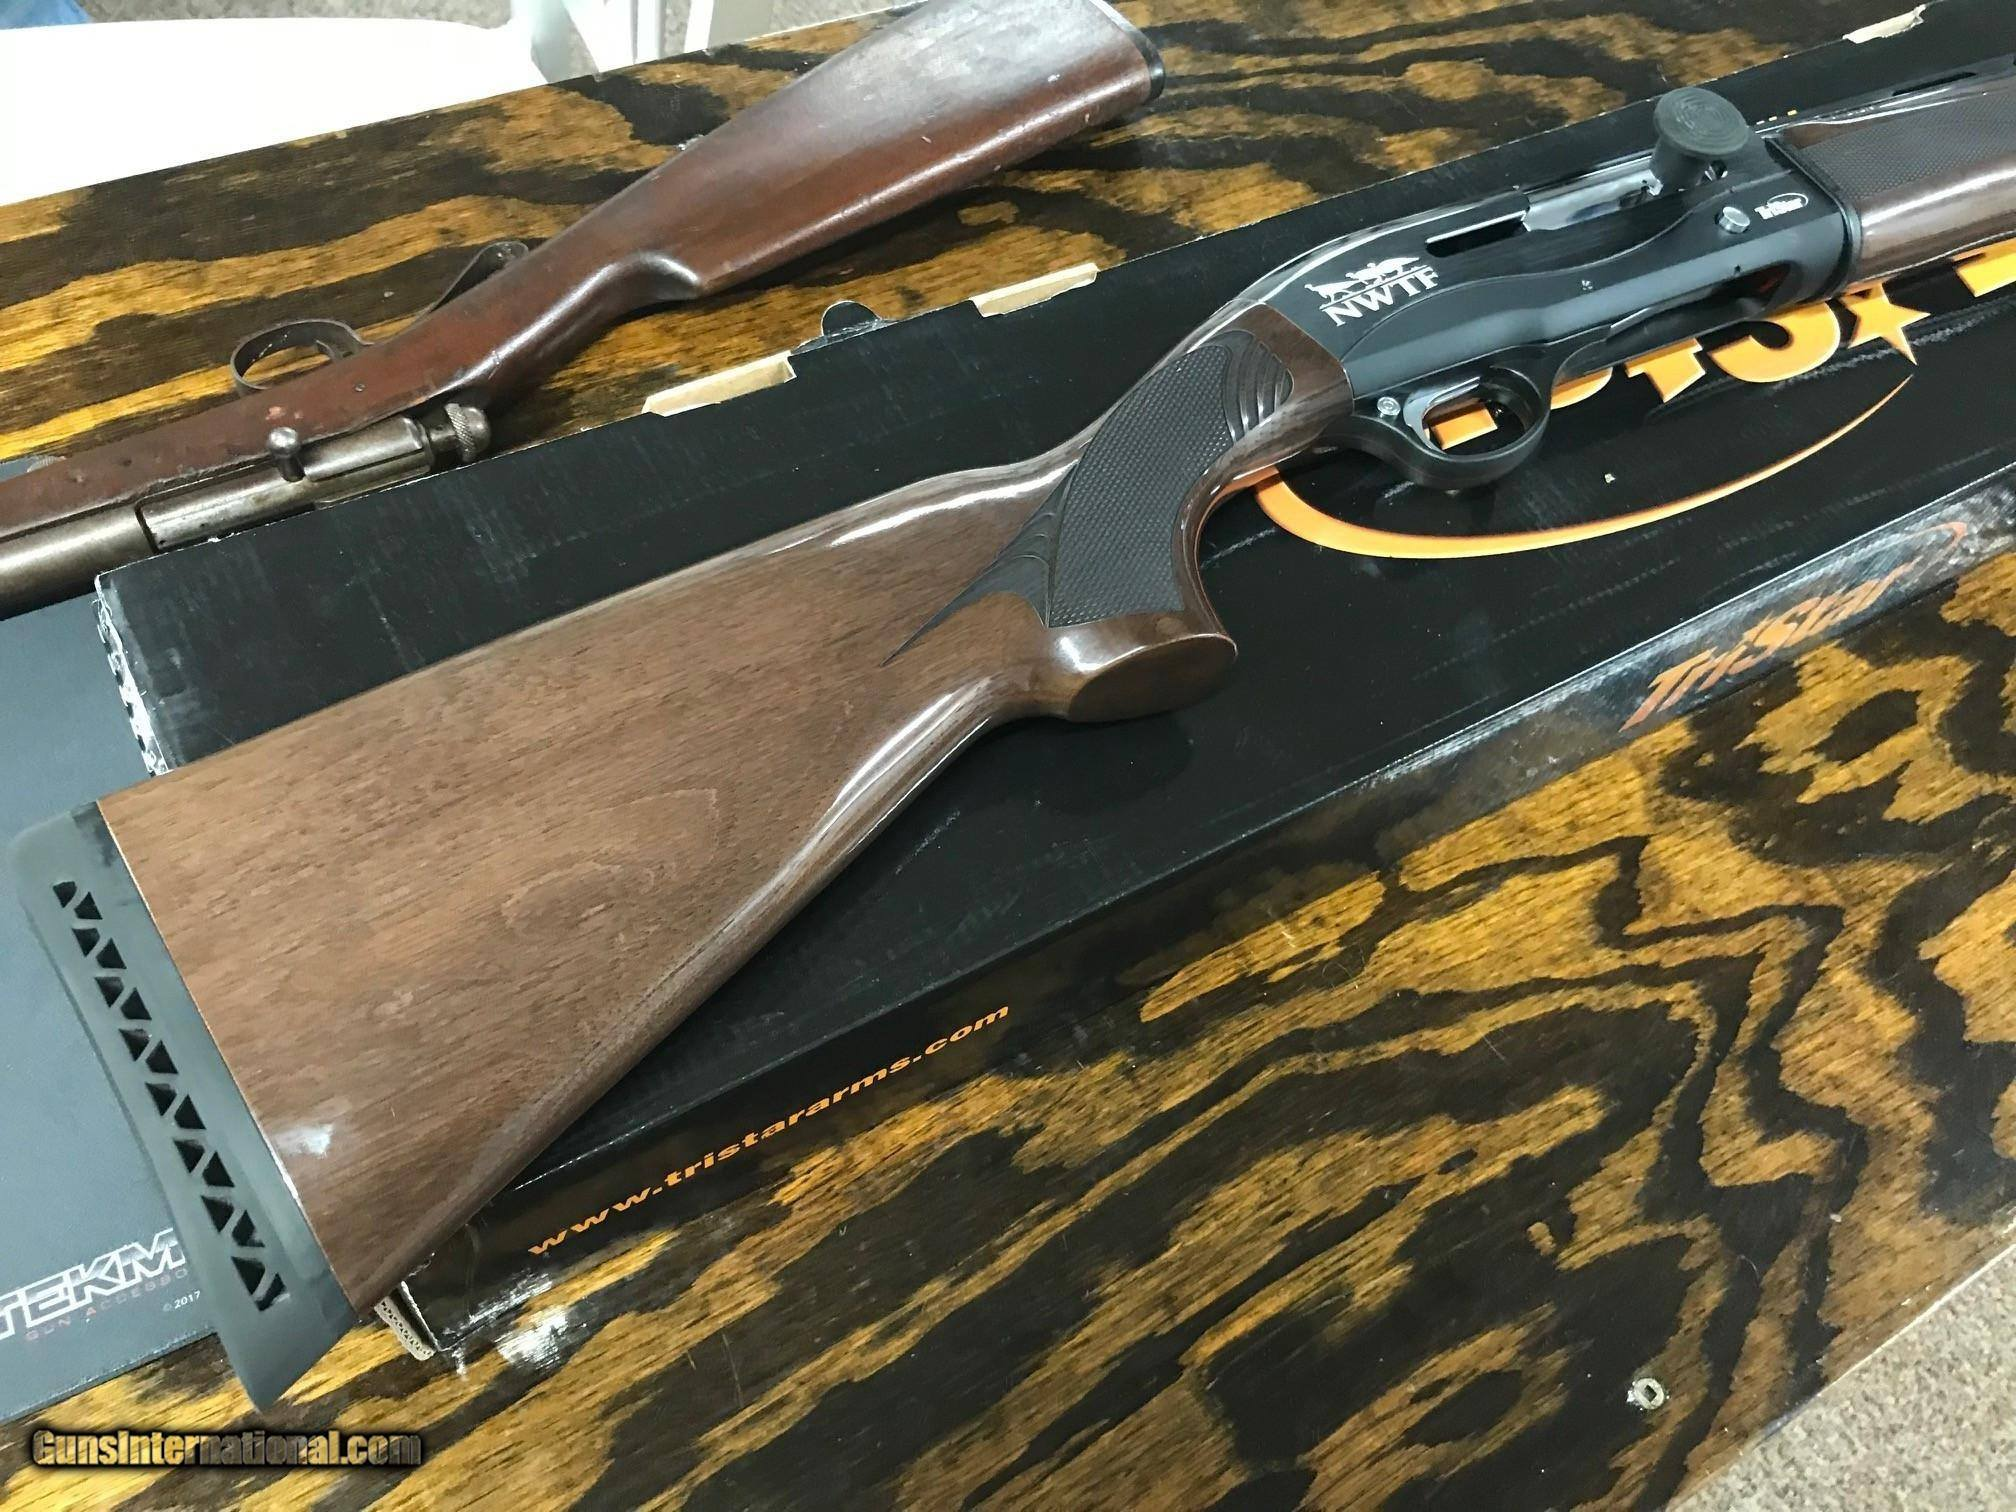 TriStar Shotgun Raptor NWTF for sale